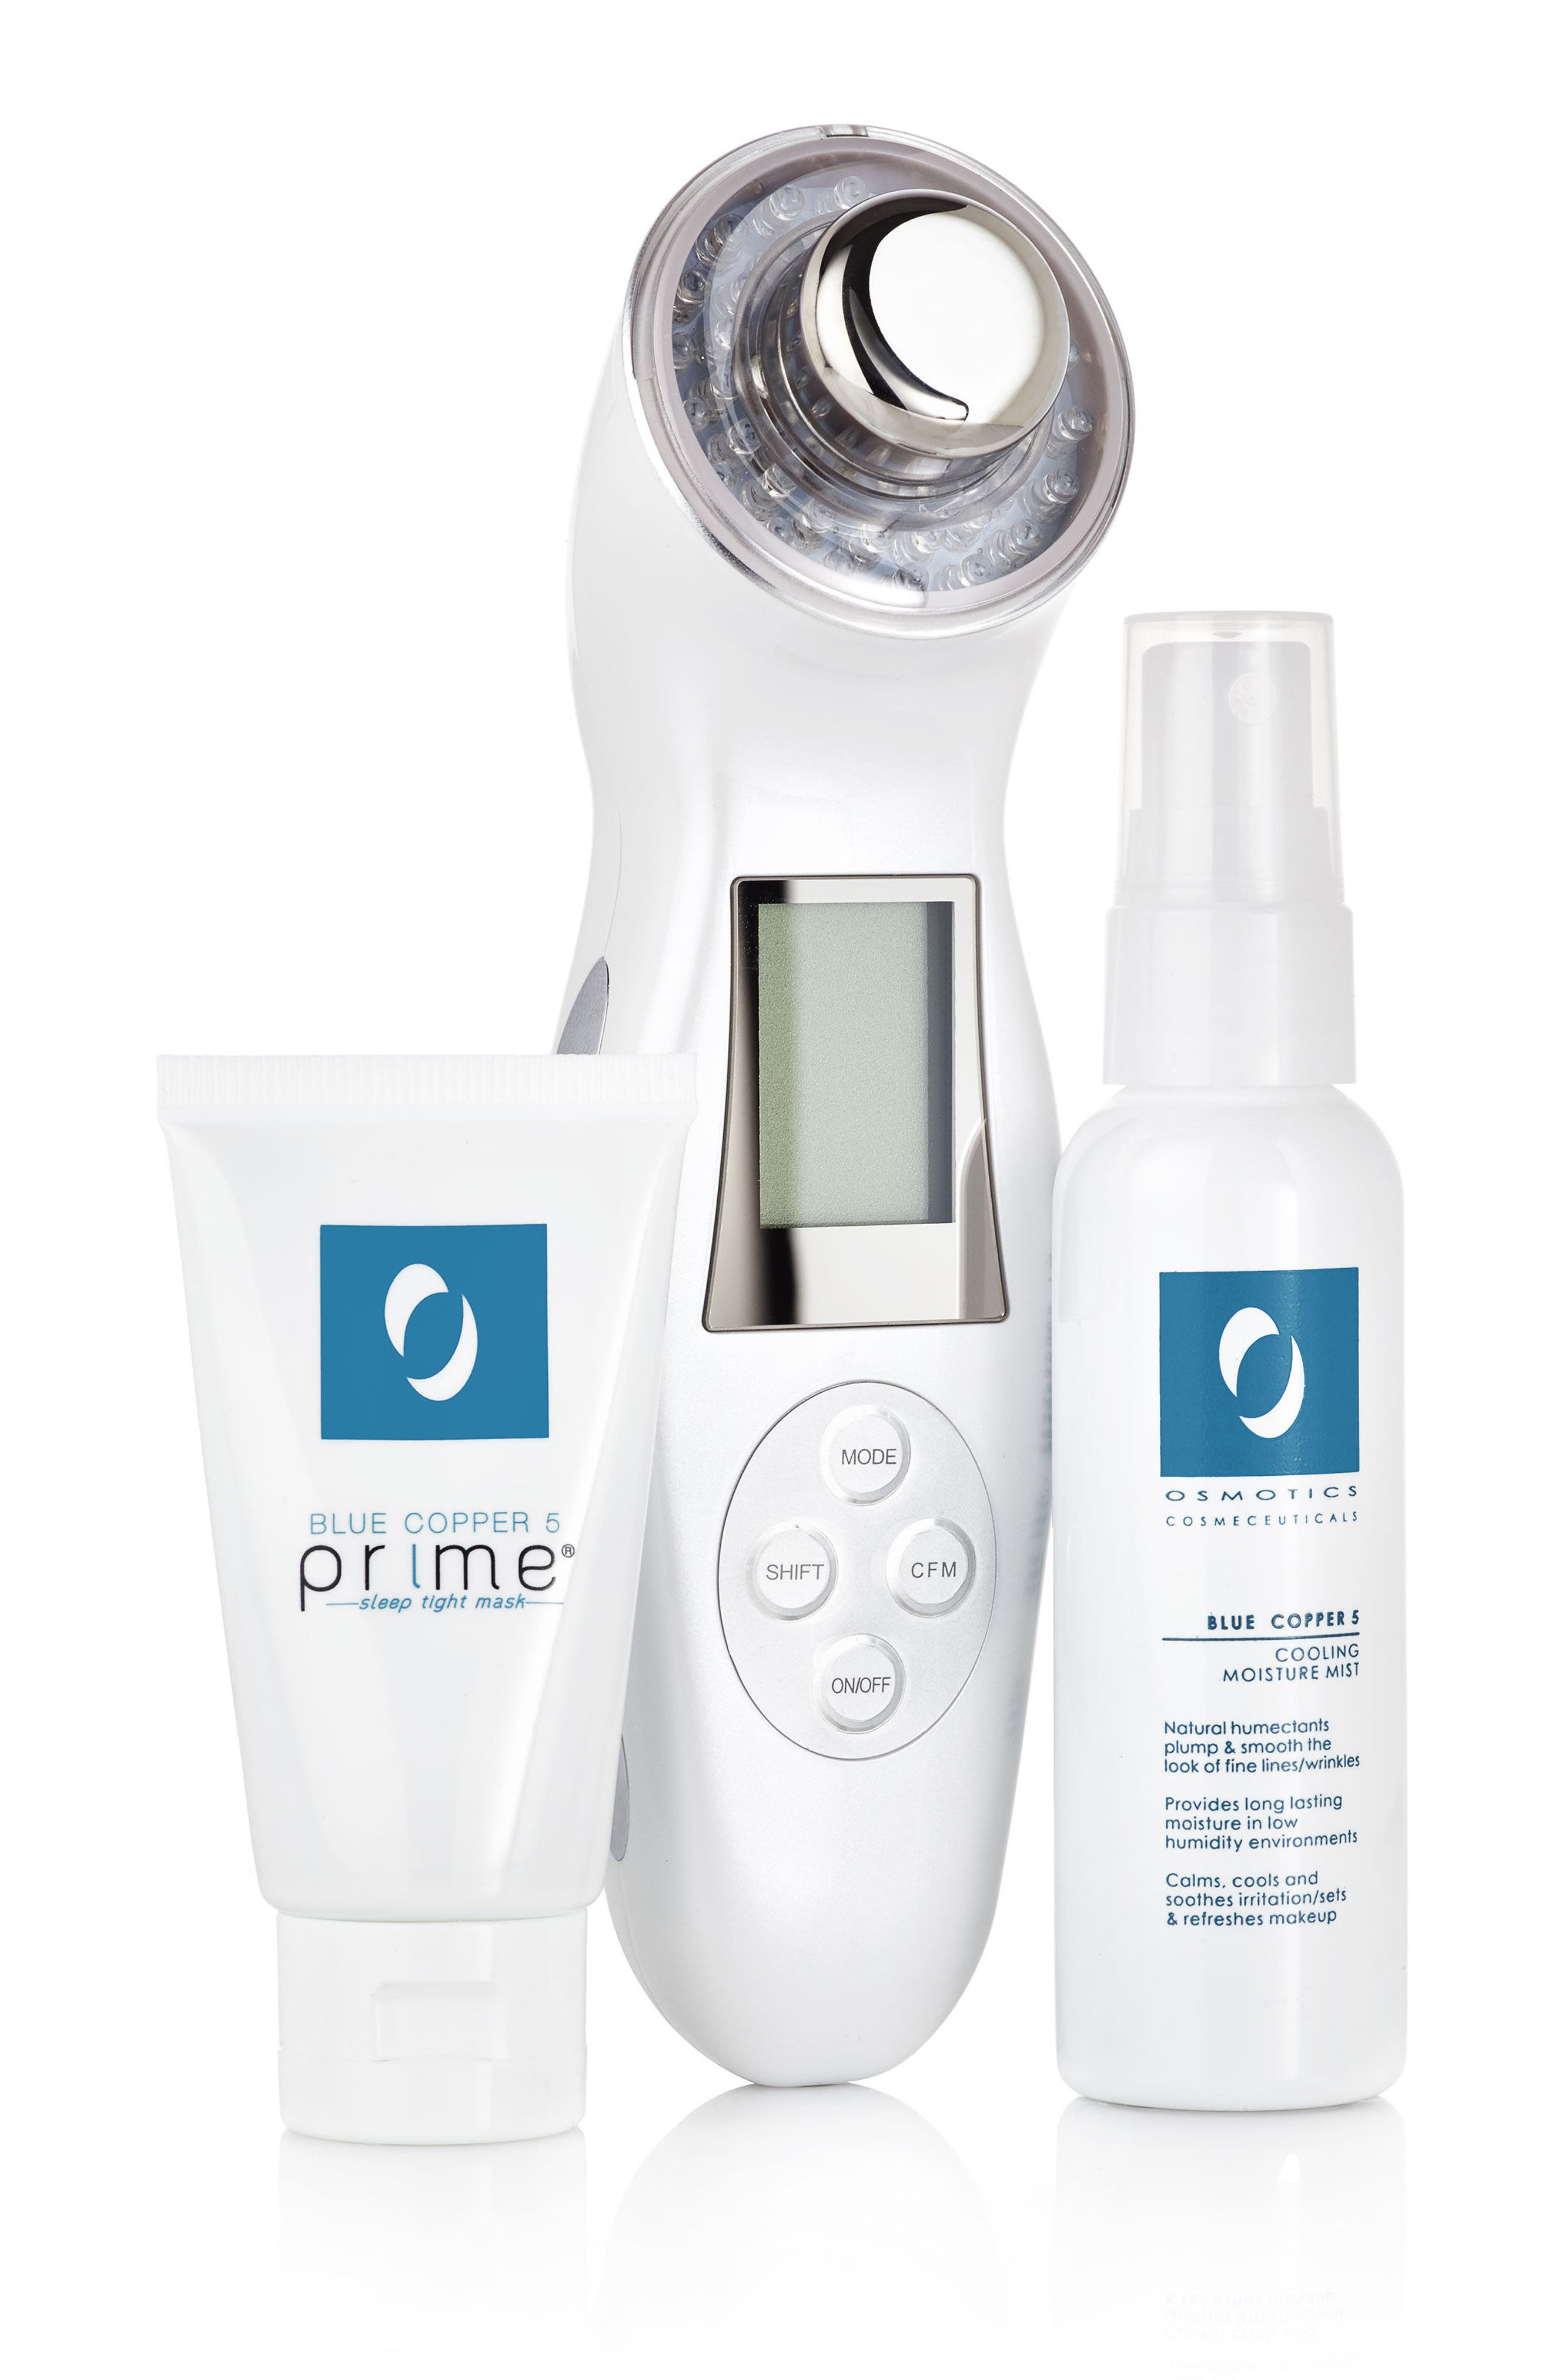 Alternate Image 1 Selected - Osmotics Cosmeceuticals '3-in-1' Ageless Facial Enhancer System